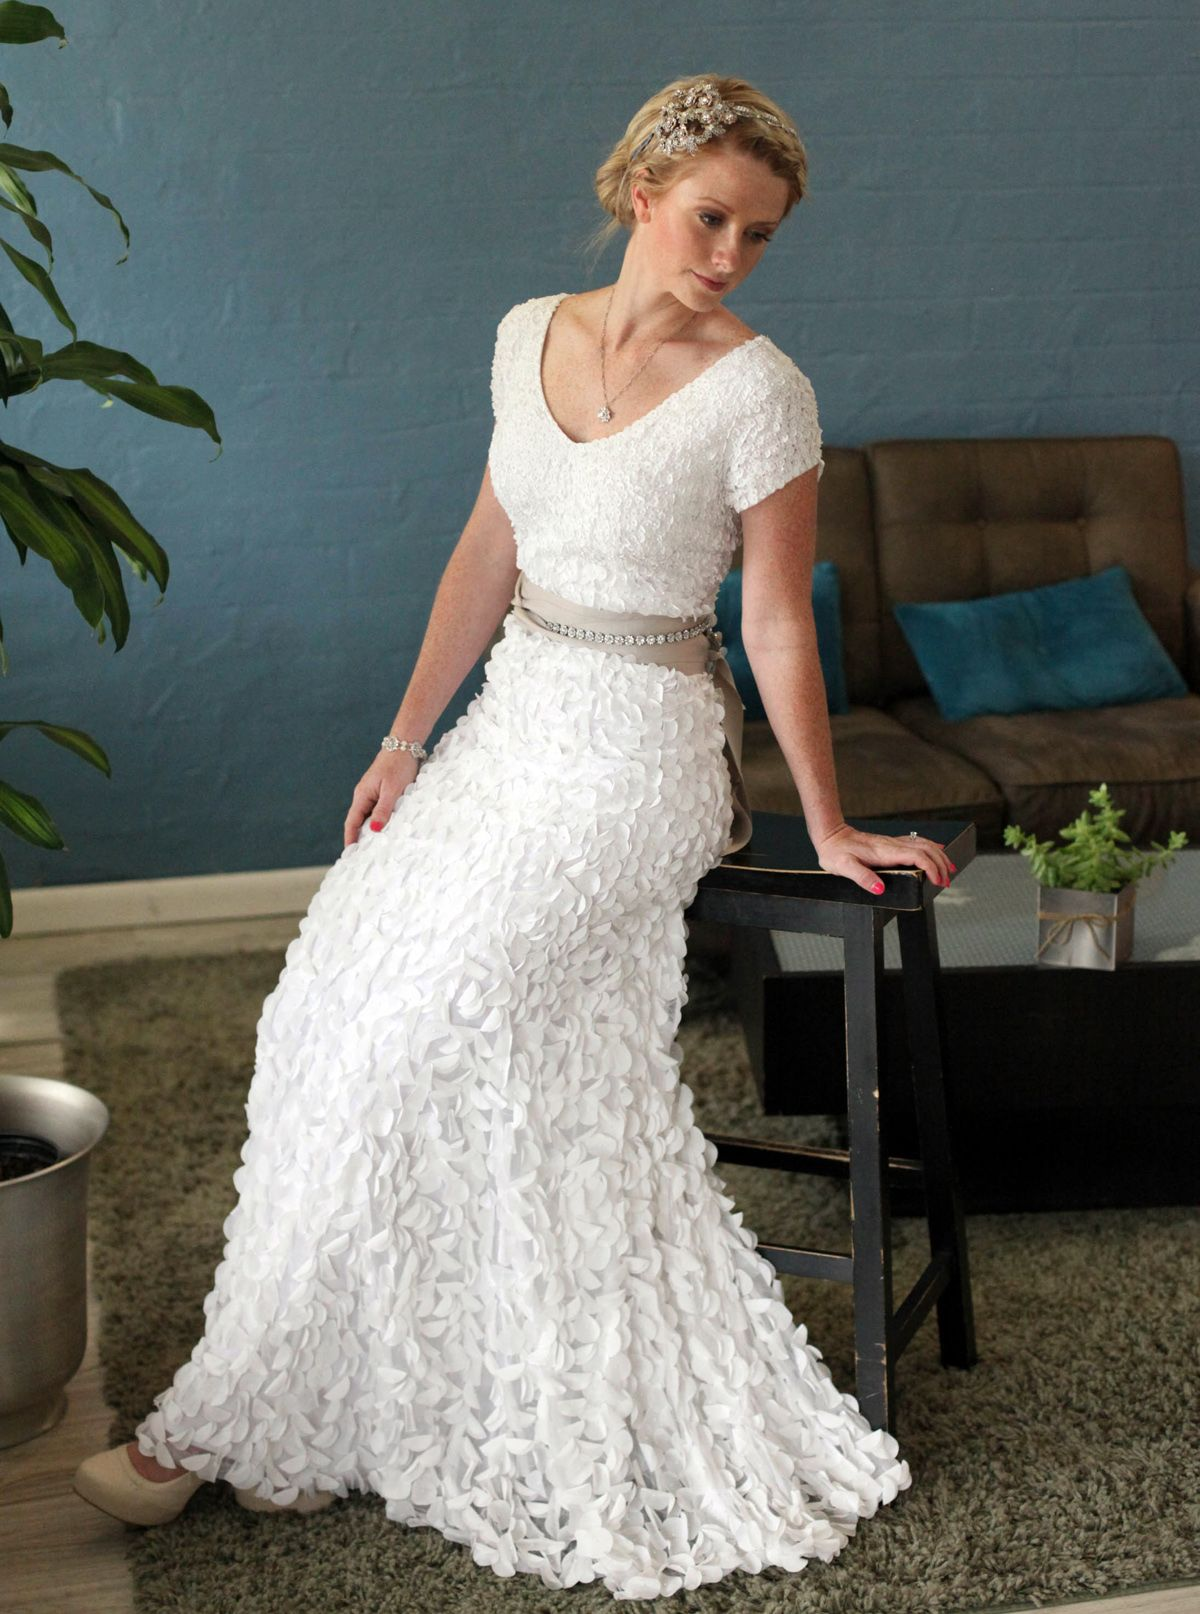 mormon wedding dresses Stunning Texture Modest Wedding Gown Not so big on the hair but lovee